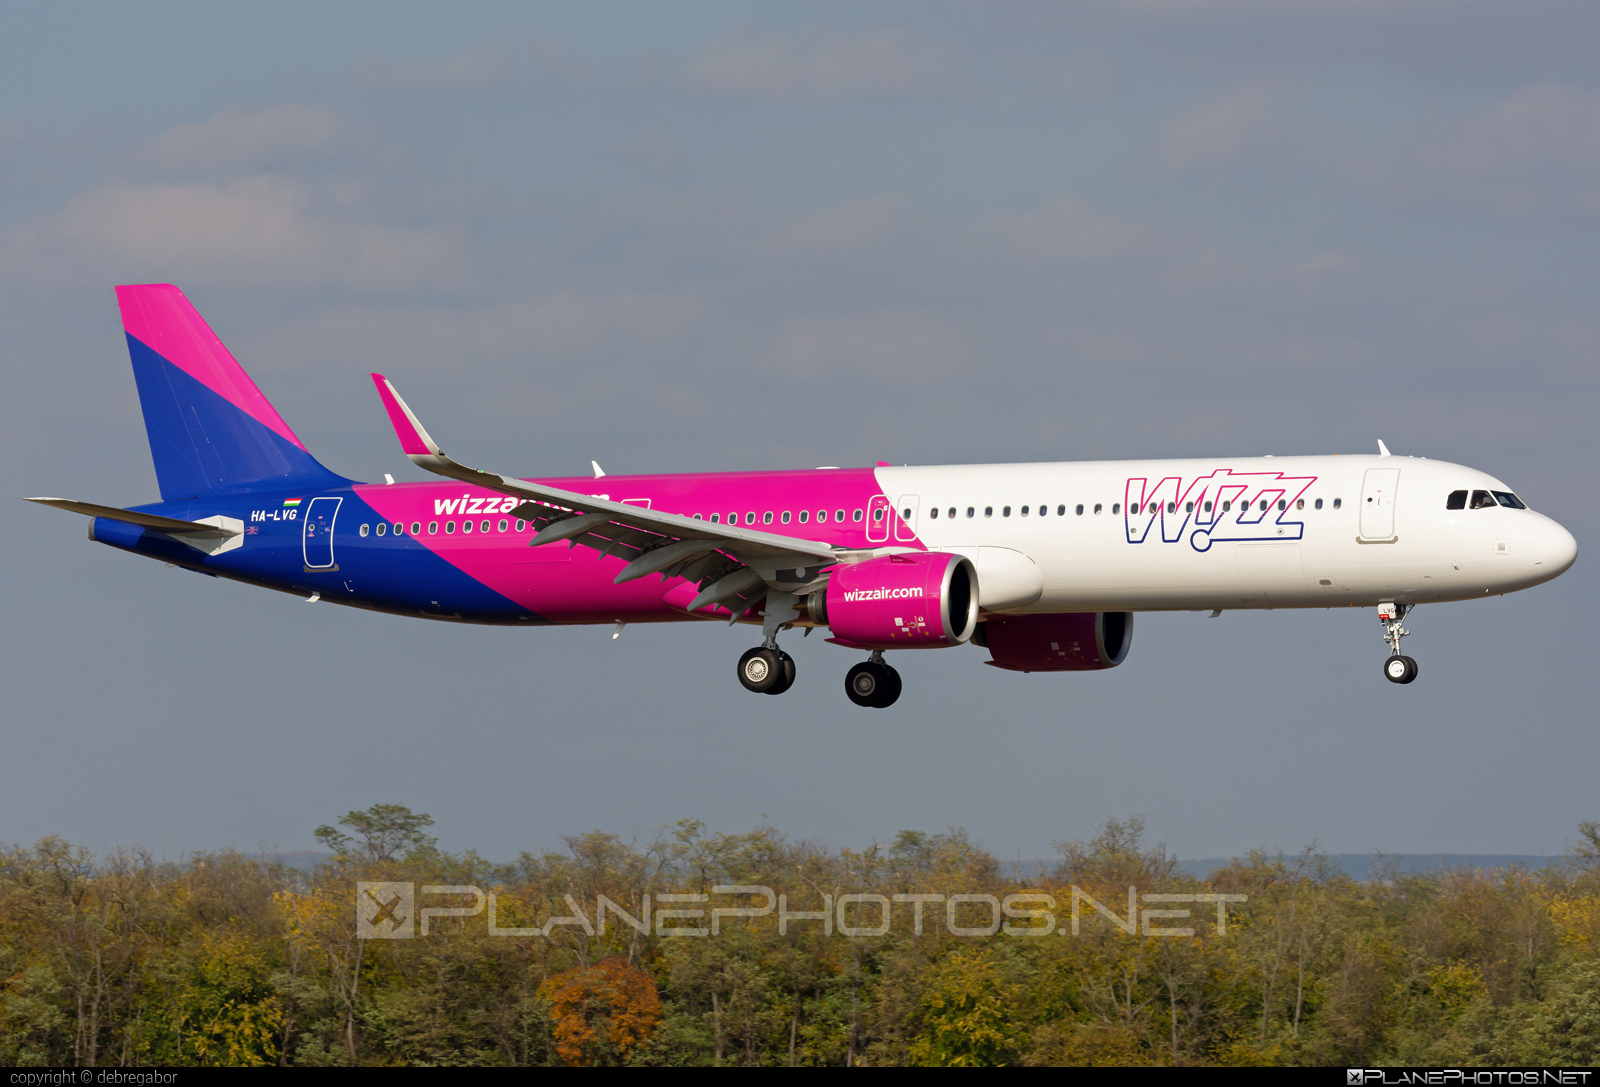 Airbus A320-271N - HA-LVG operated by Wizz Air #a320 #a320family #a320neo #airbus #airbus320 #wizz #wizzair